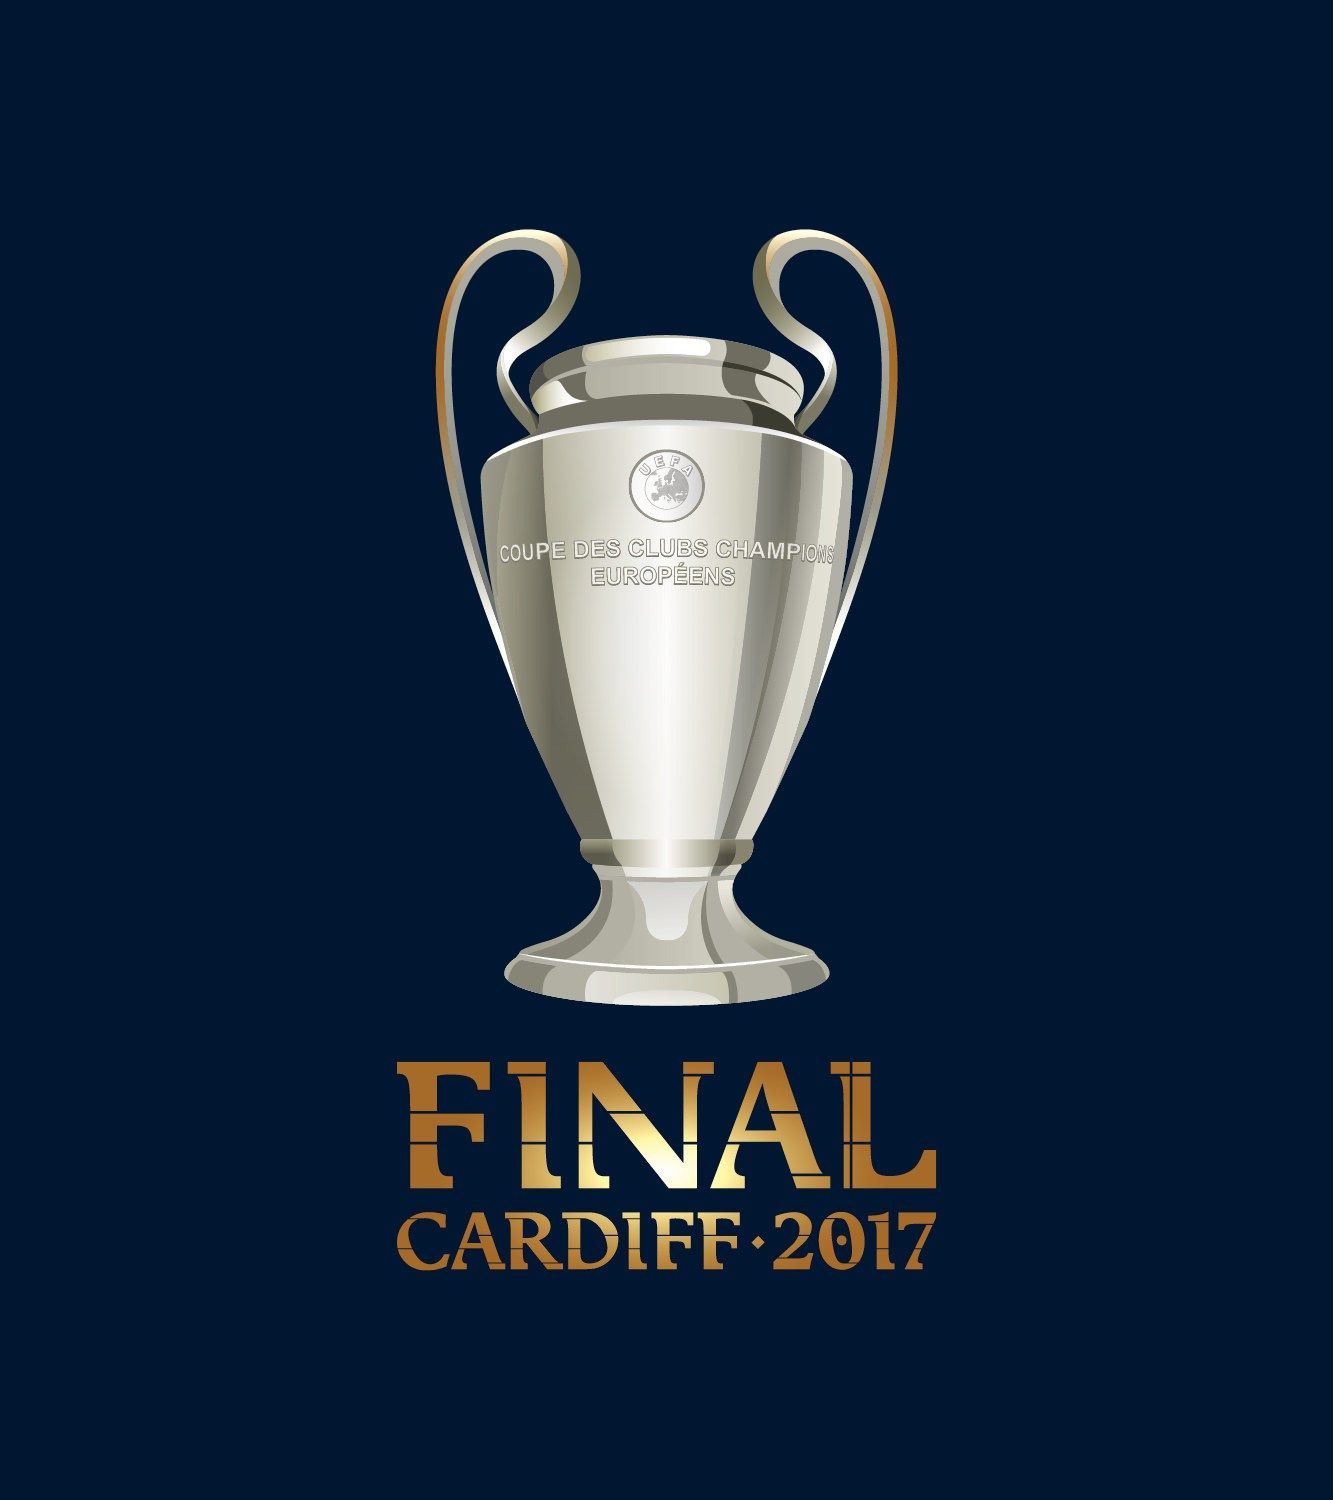 uefa champions league final 2017 designwerk expect great things champions league final uefa champions league champions league uefa champions league final 2017